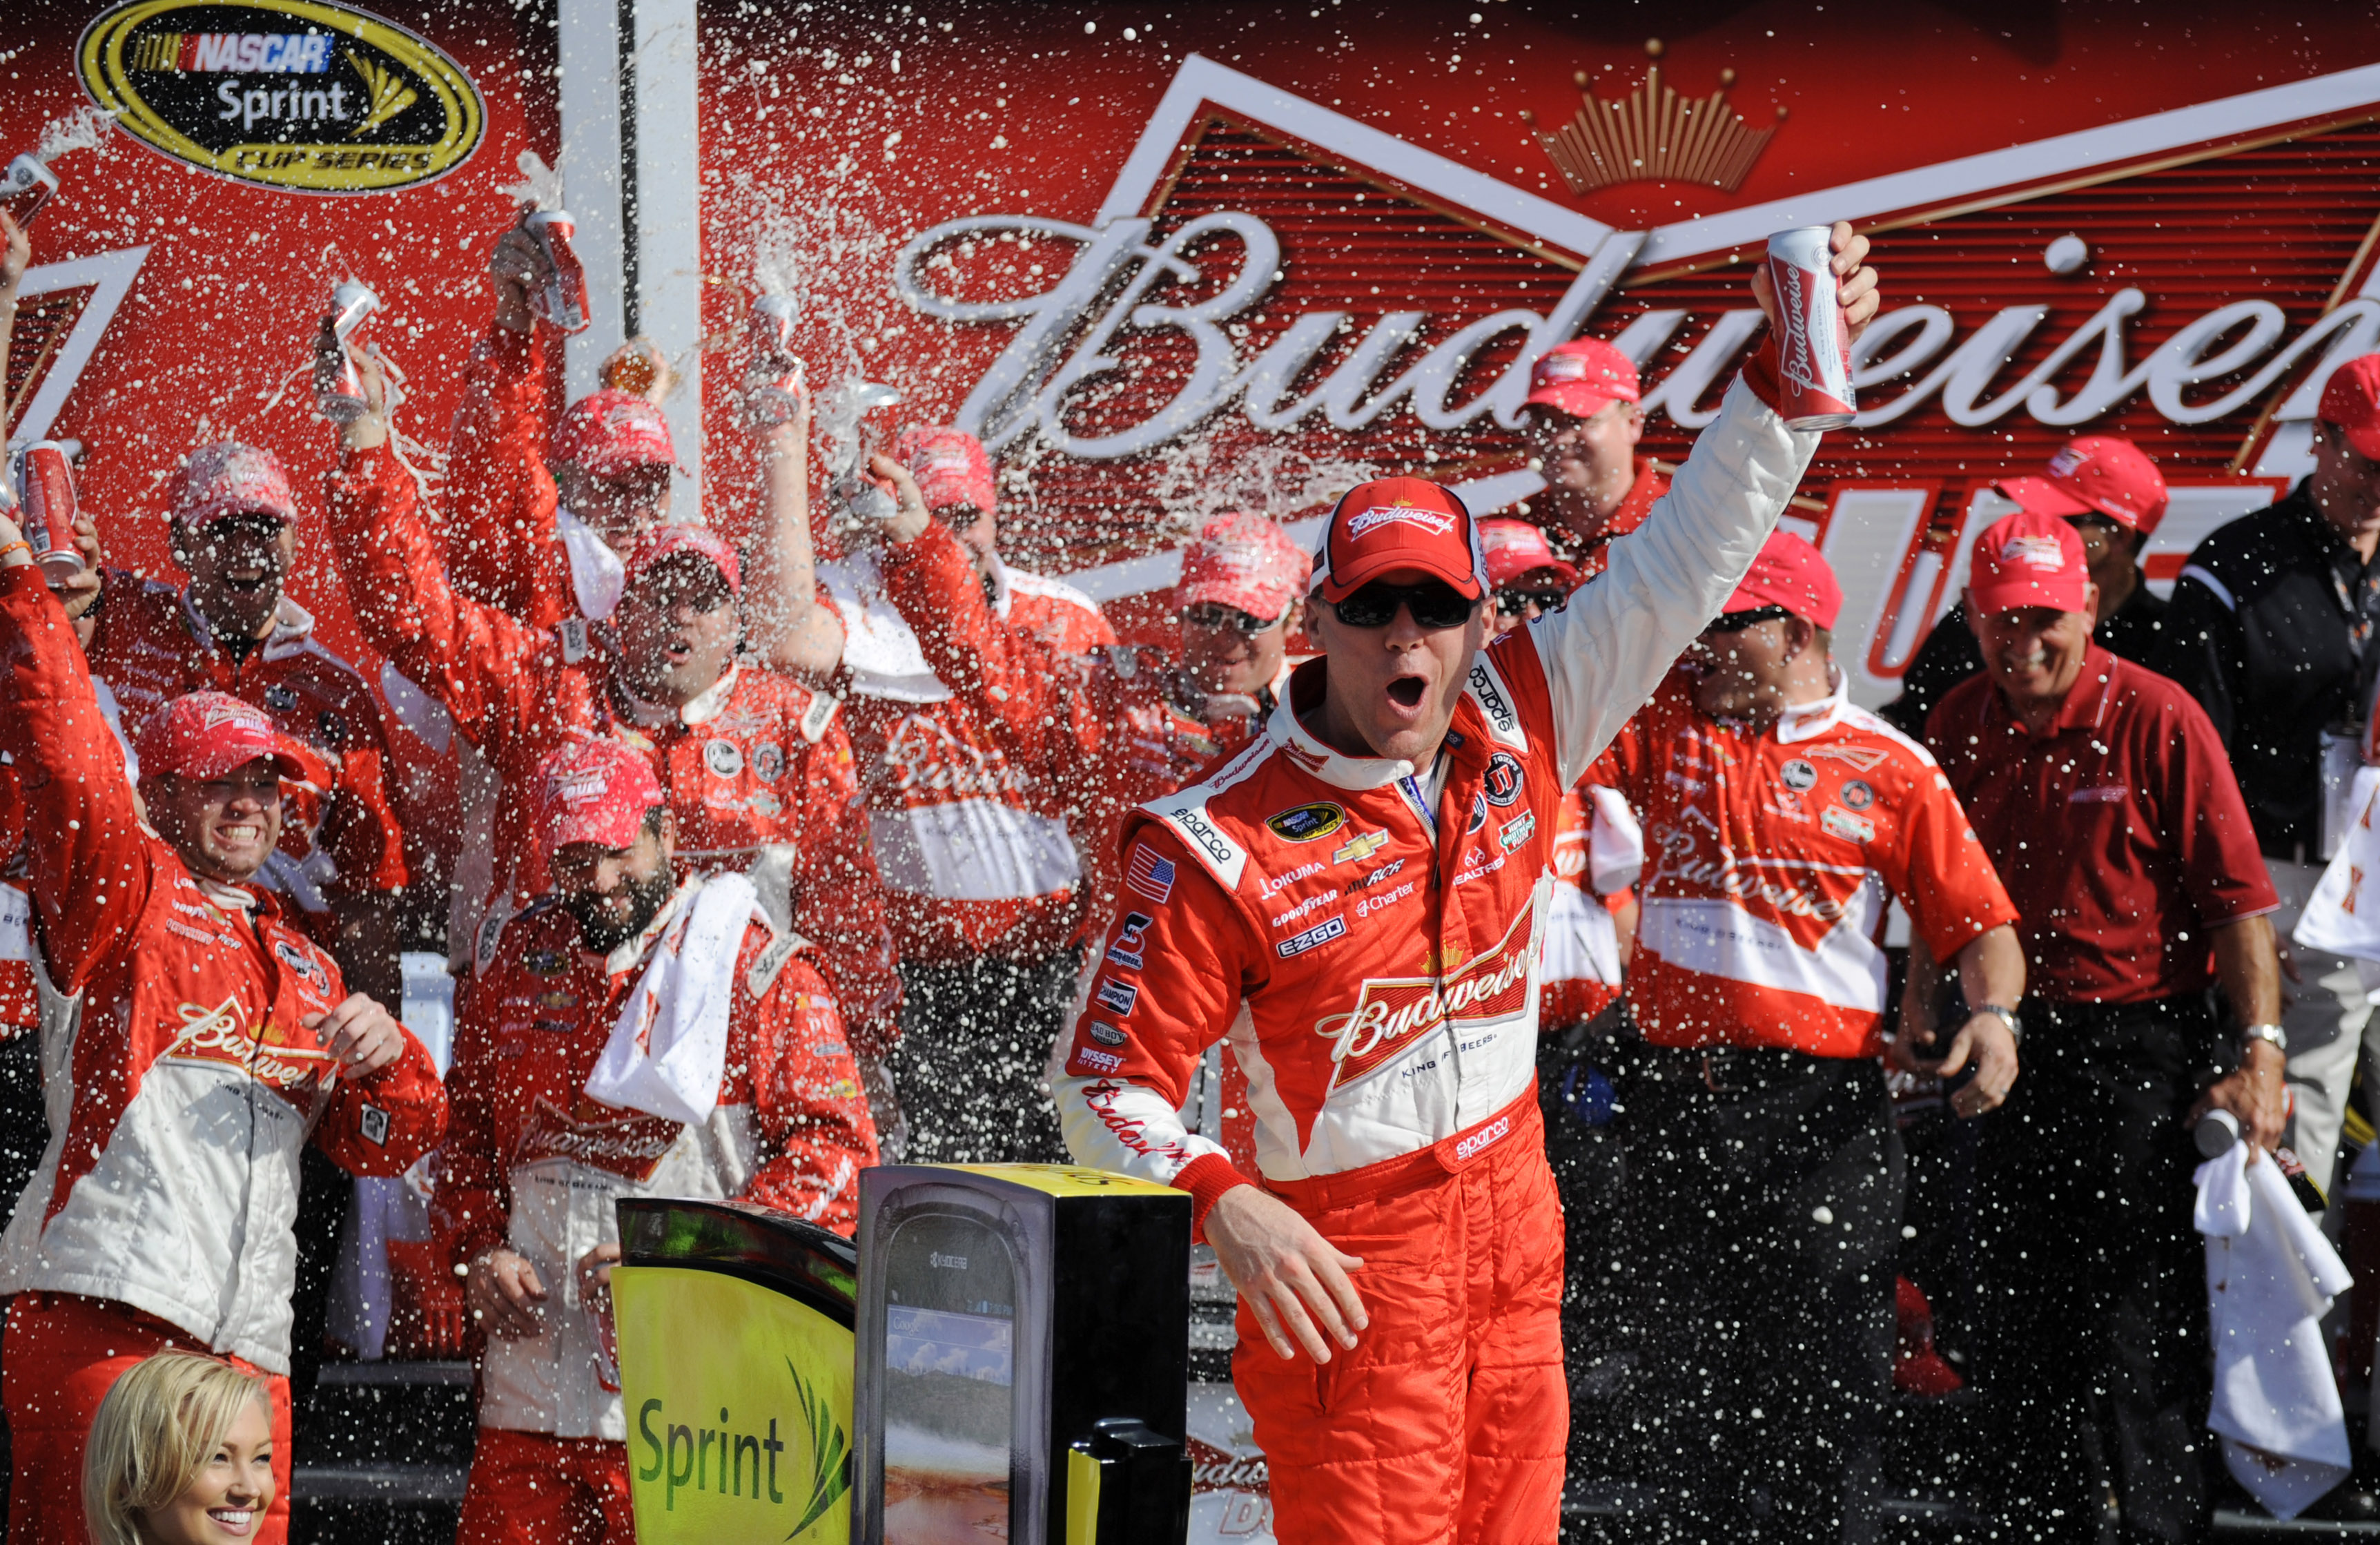 Kevin Harvick celebrates in victory lane after winning the first Budweiser Duel. (USA TODAY Sports)